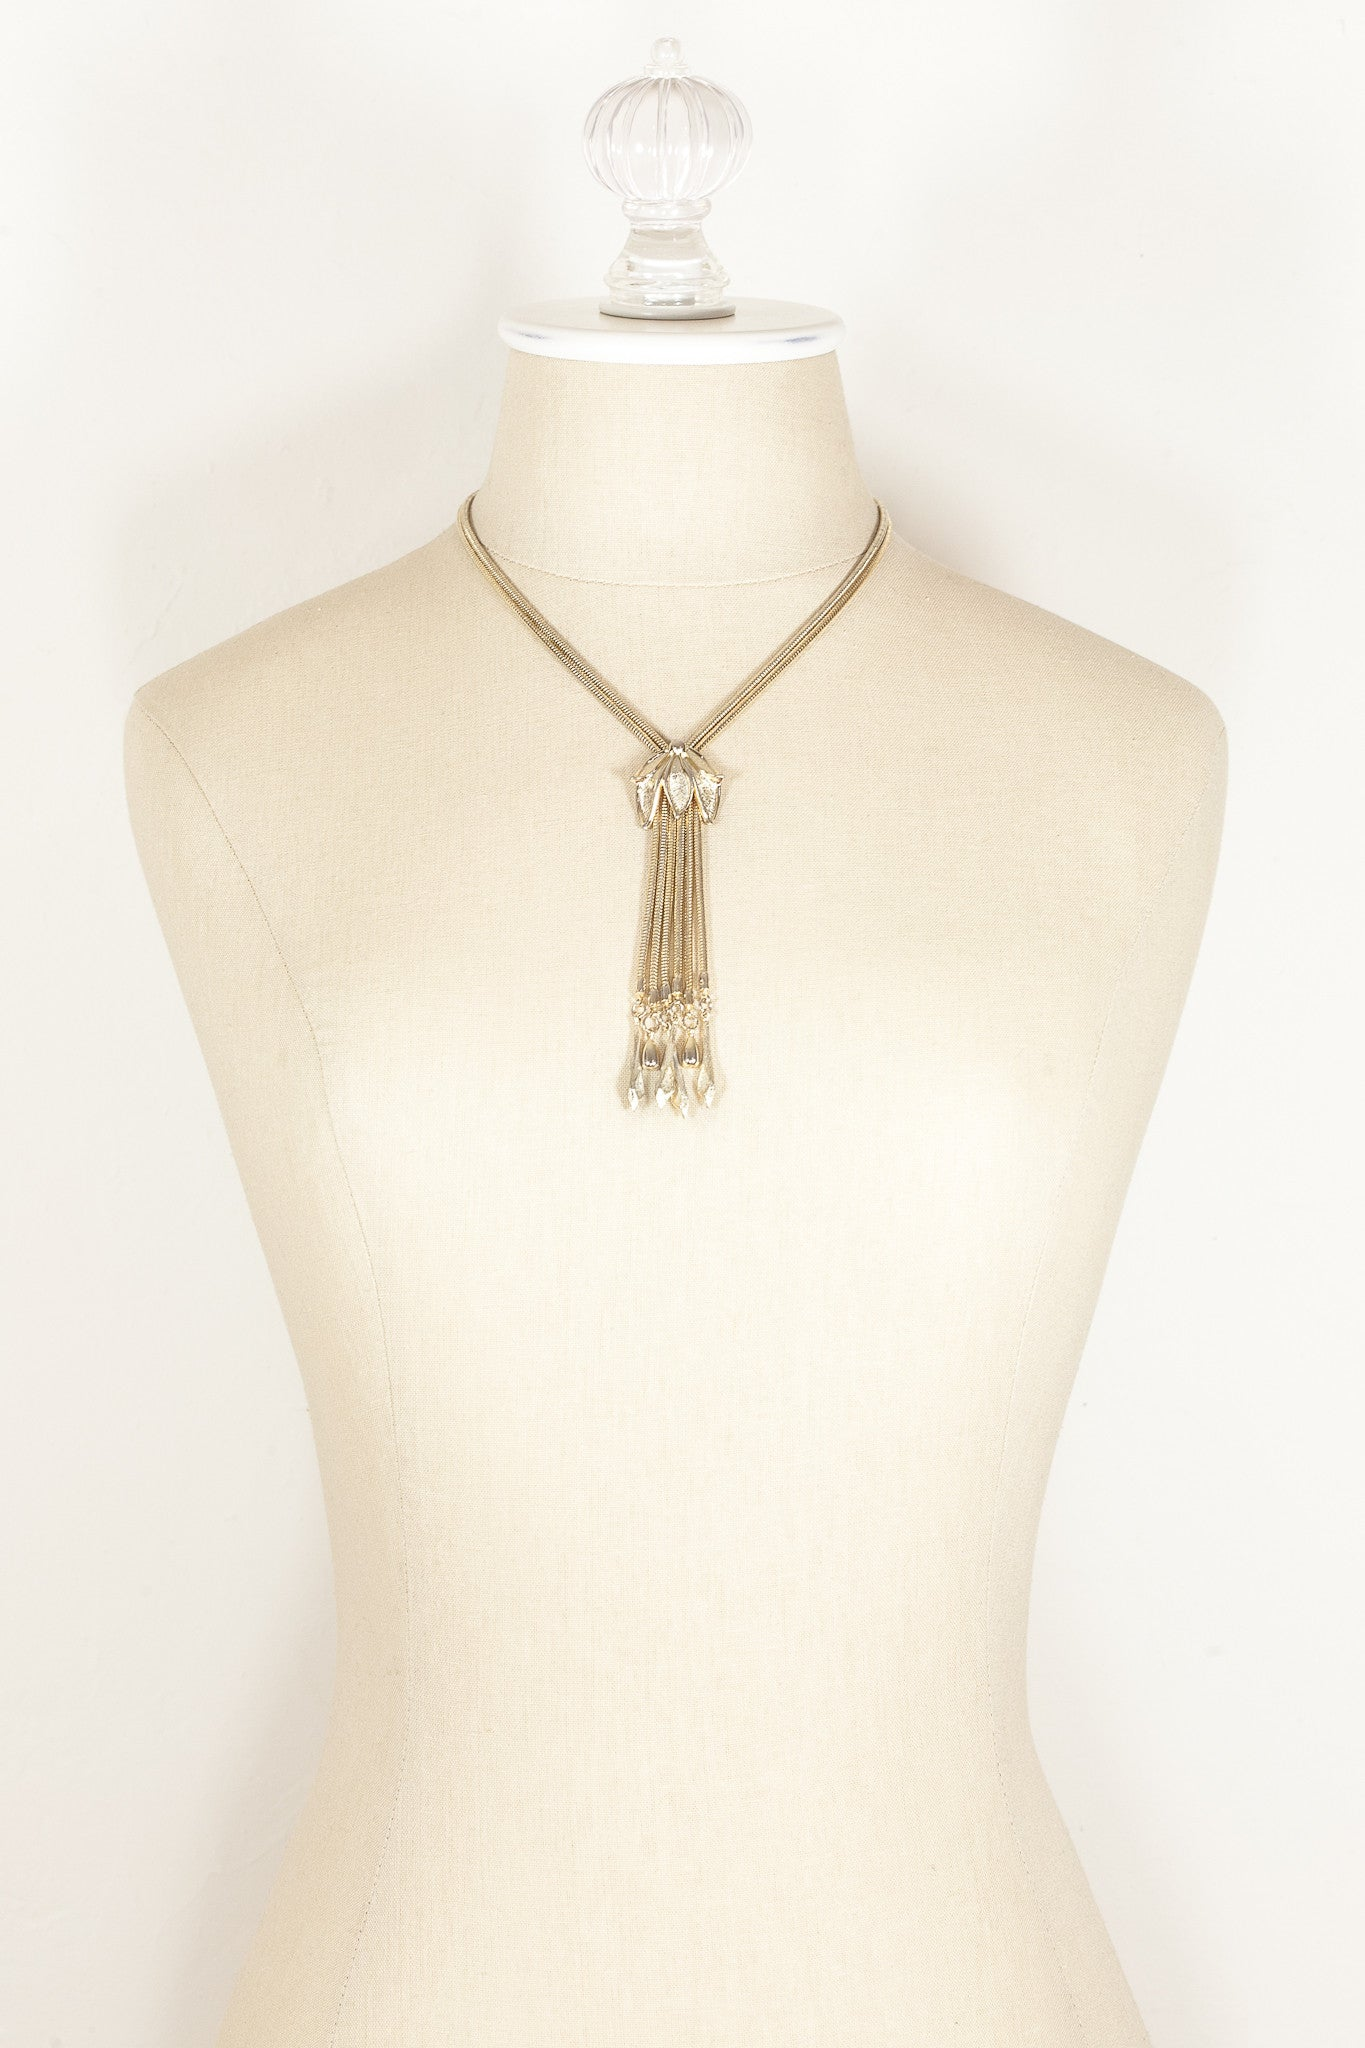 70's__Vintage__Snake Chain Tassel Necklace